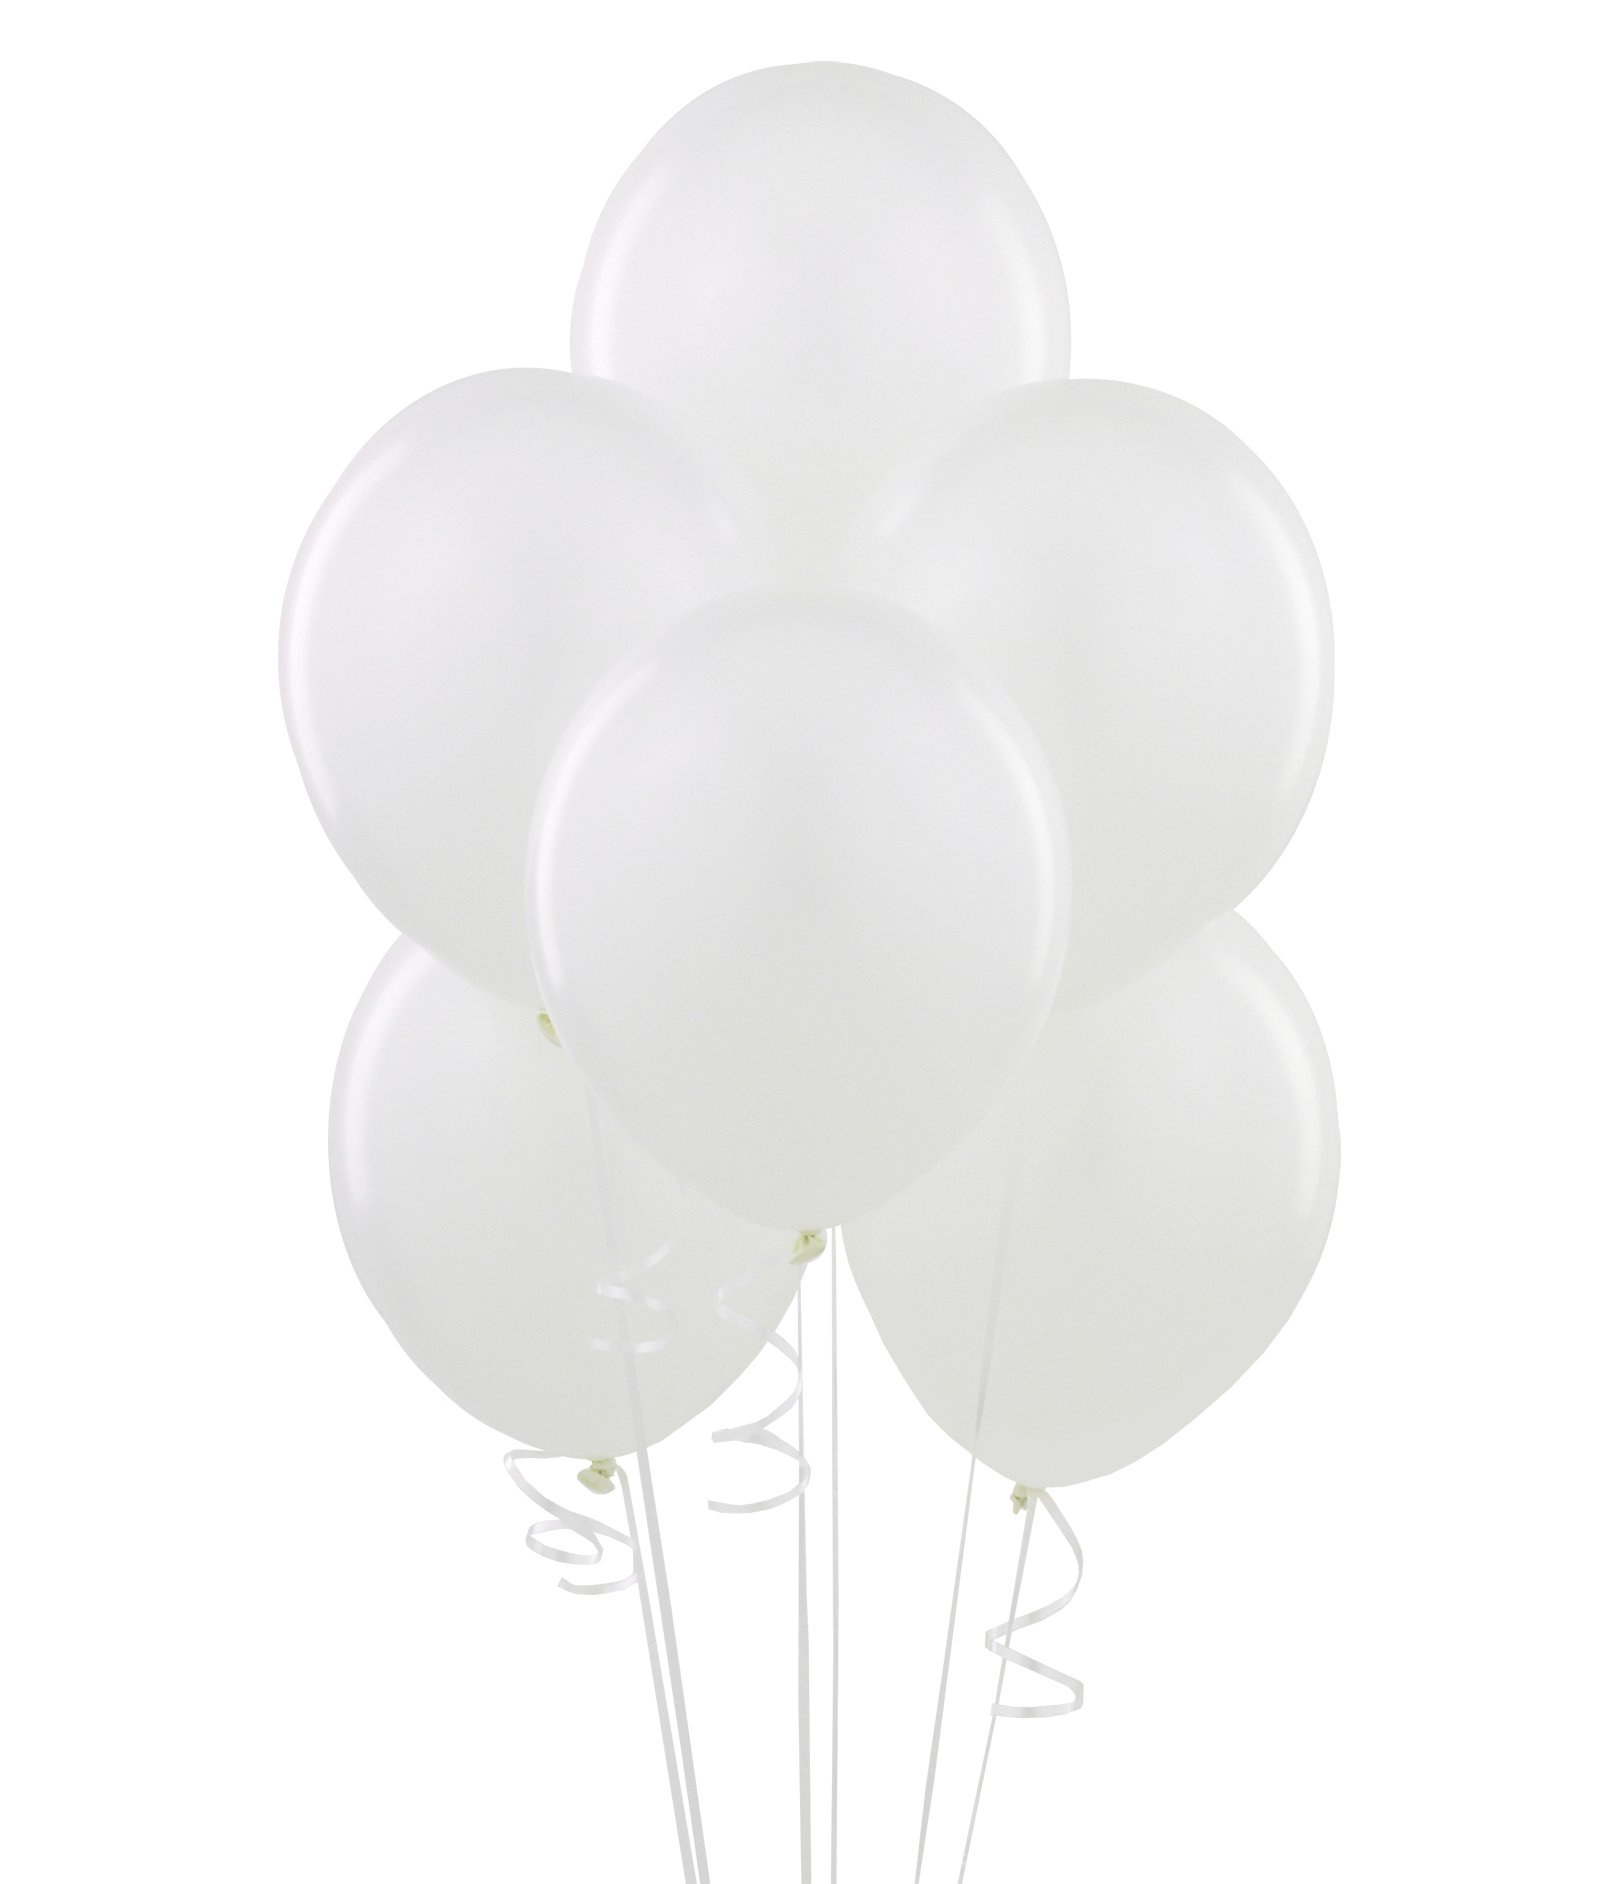 Bright White (White) Latex Balloons (6 count)